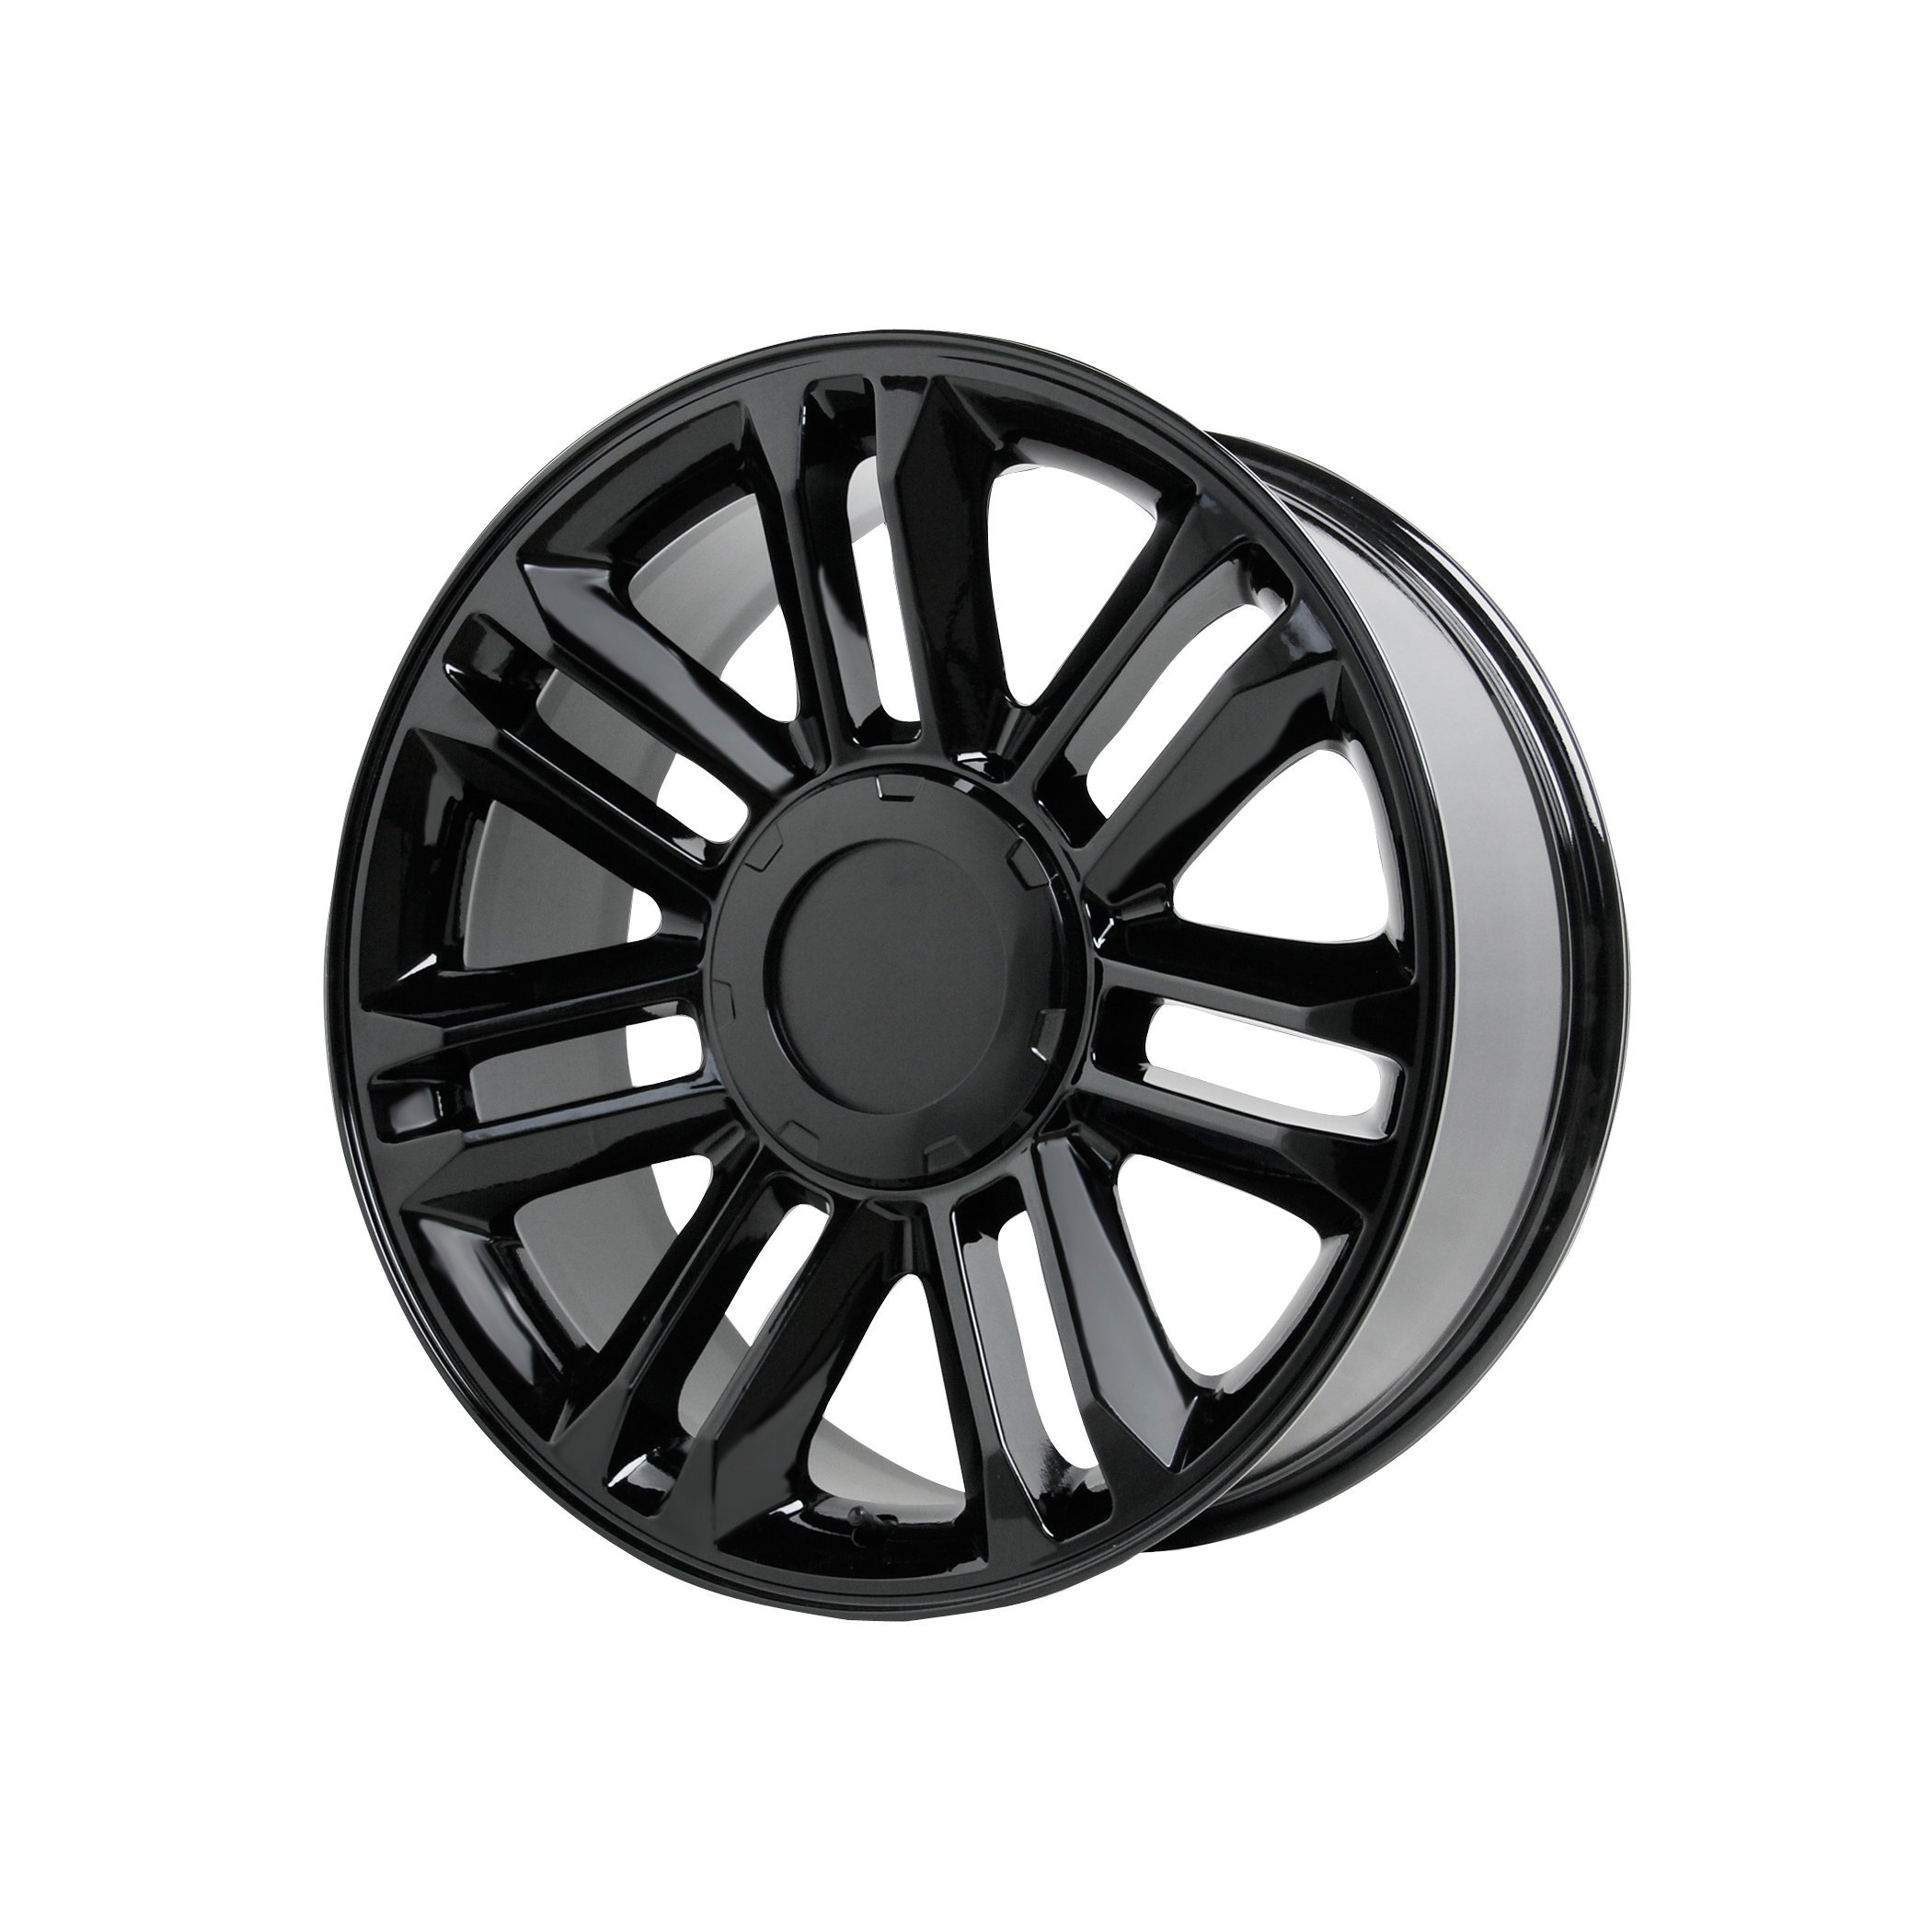 Wheel Replicas V1165 Gloss Black Wheel (22x9''/6x5.5'') by Wheel Replicas (Image #1)